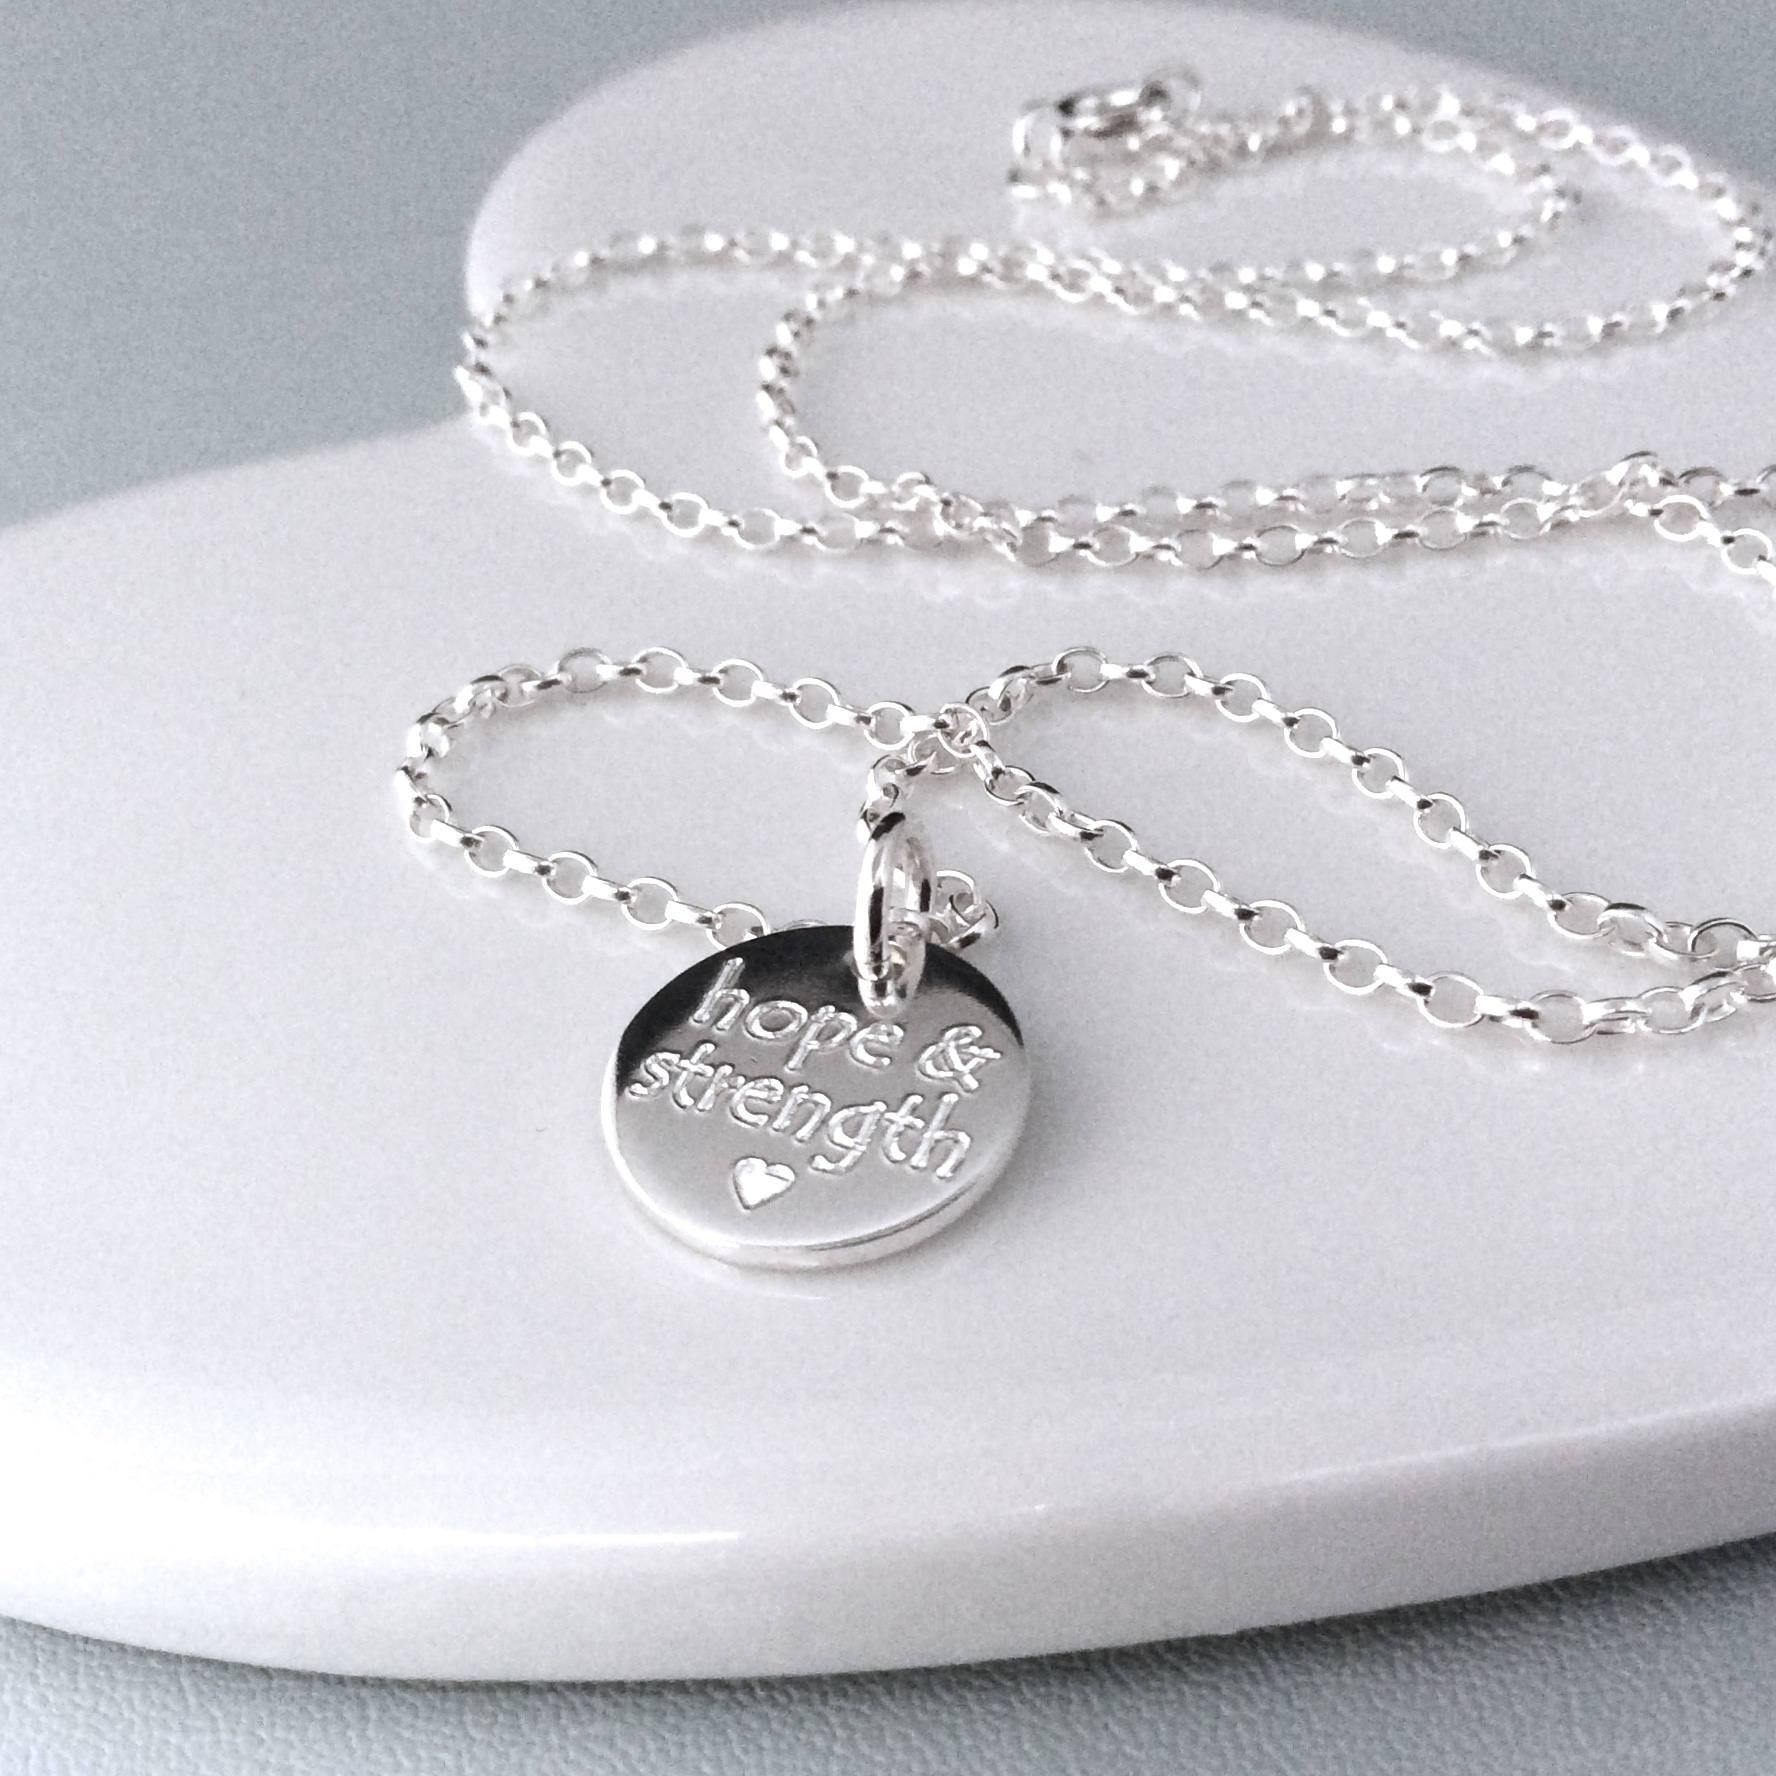 Quote necklace - Hope & Strength - sterling silver 12mm